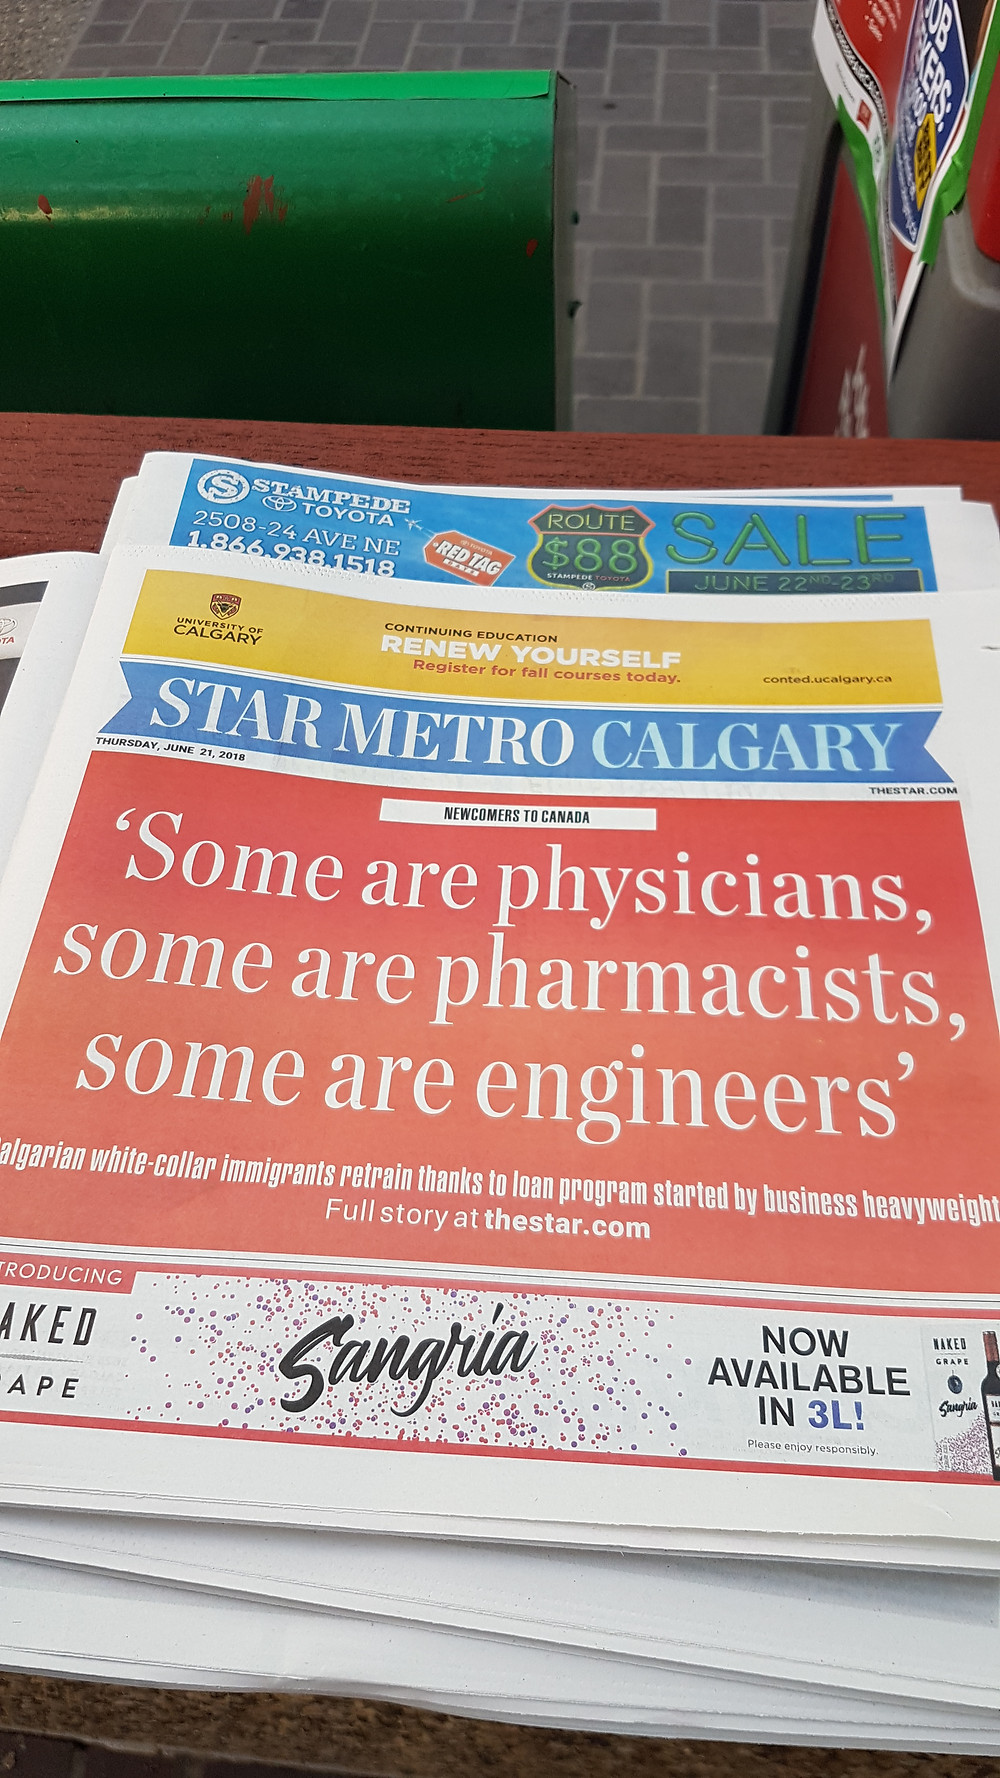 Front page of The Star Metro Calgary on June 21, 2018